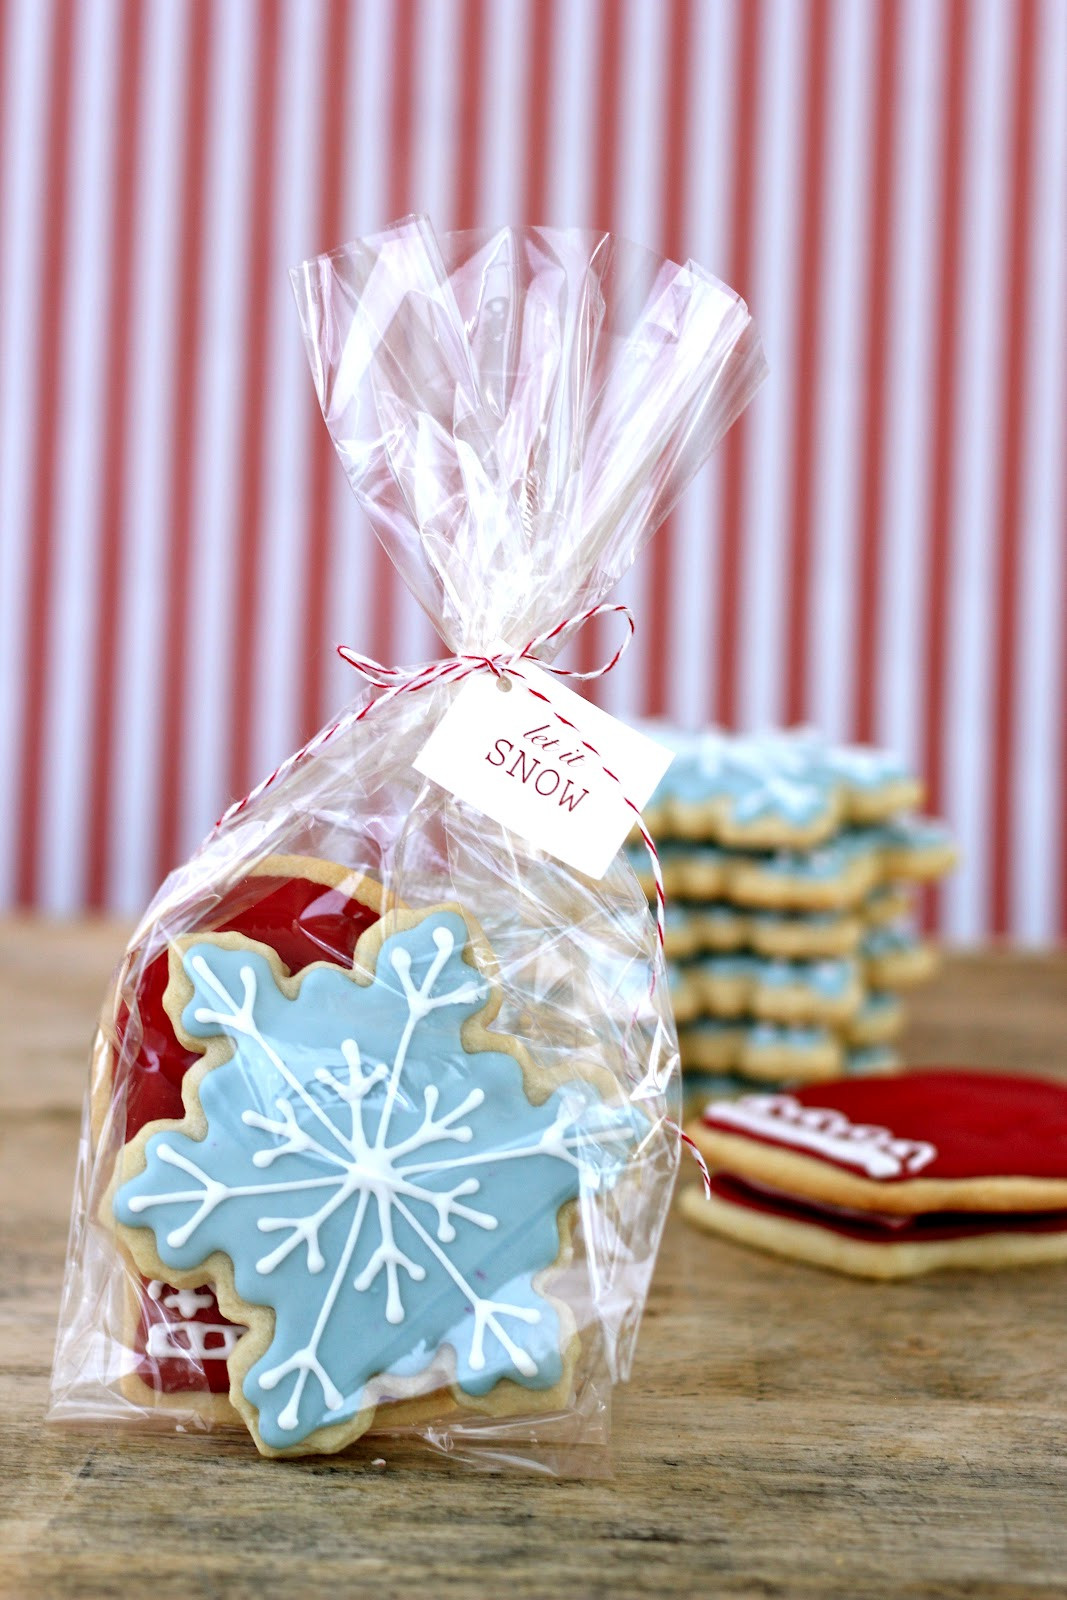 Christmas Cookies In A Bag  Jenny Steffens Hobick Packaging Baked Goods in Your